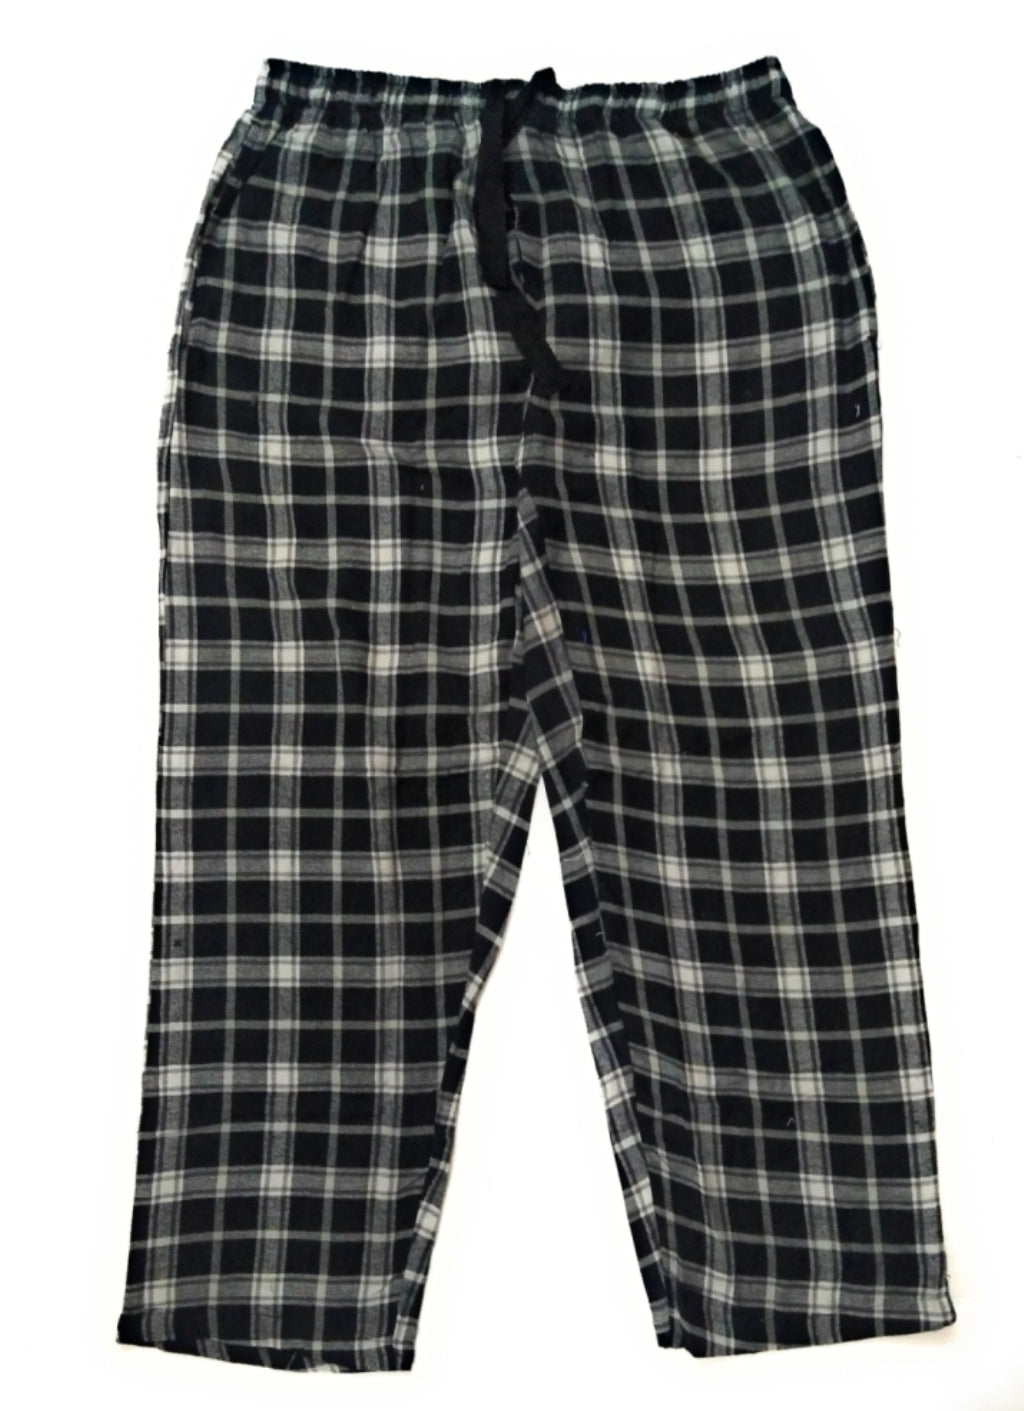 100% Cotton Black and White Checked Pyjama Sleepwear Night Wear